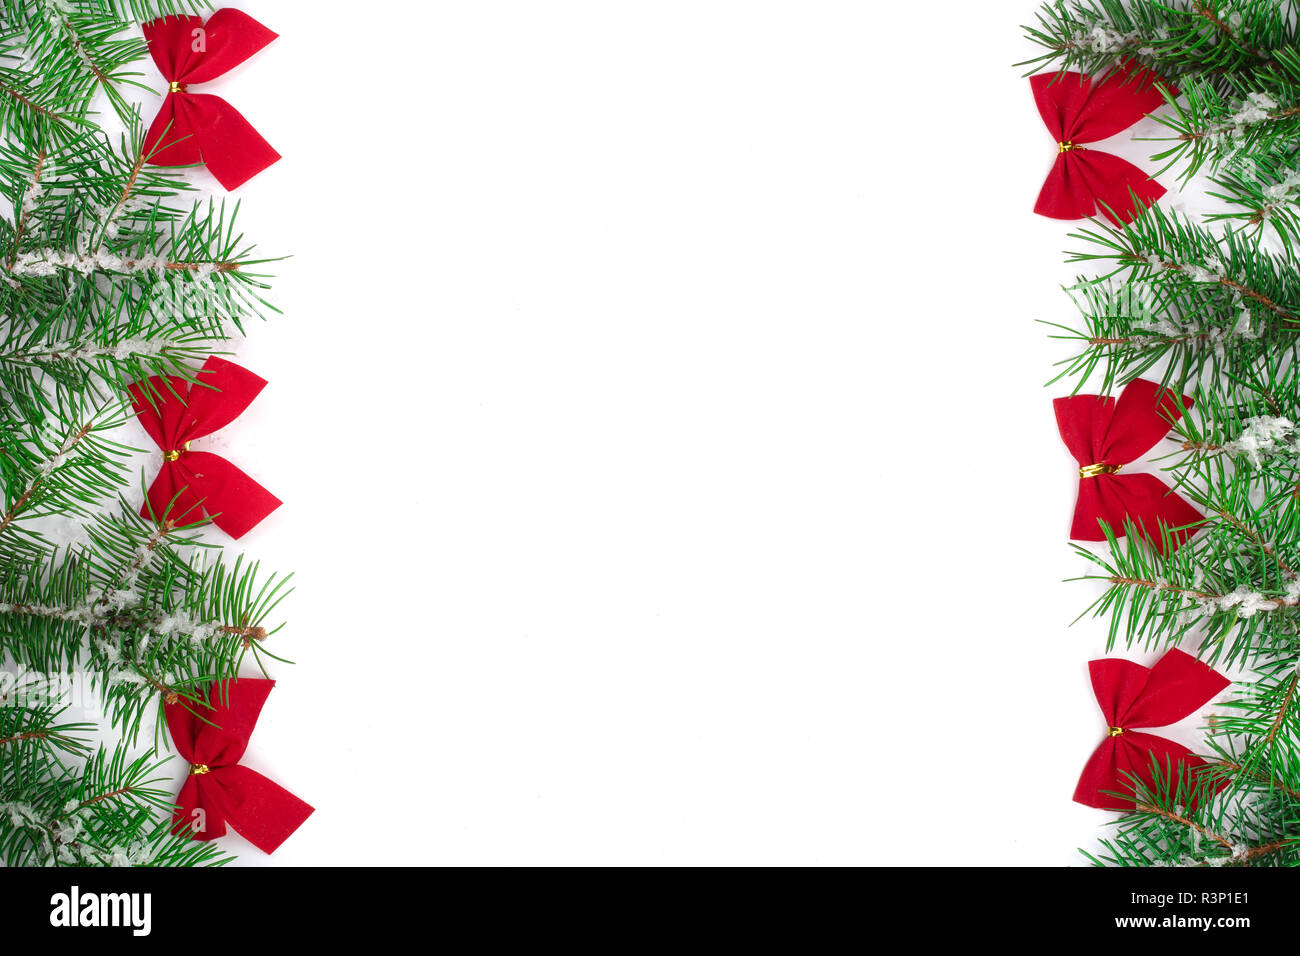 Christmas Frame of Fir tree branch with snow and red bows isolated on white background with copy space for your text - Stock Image